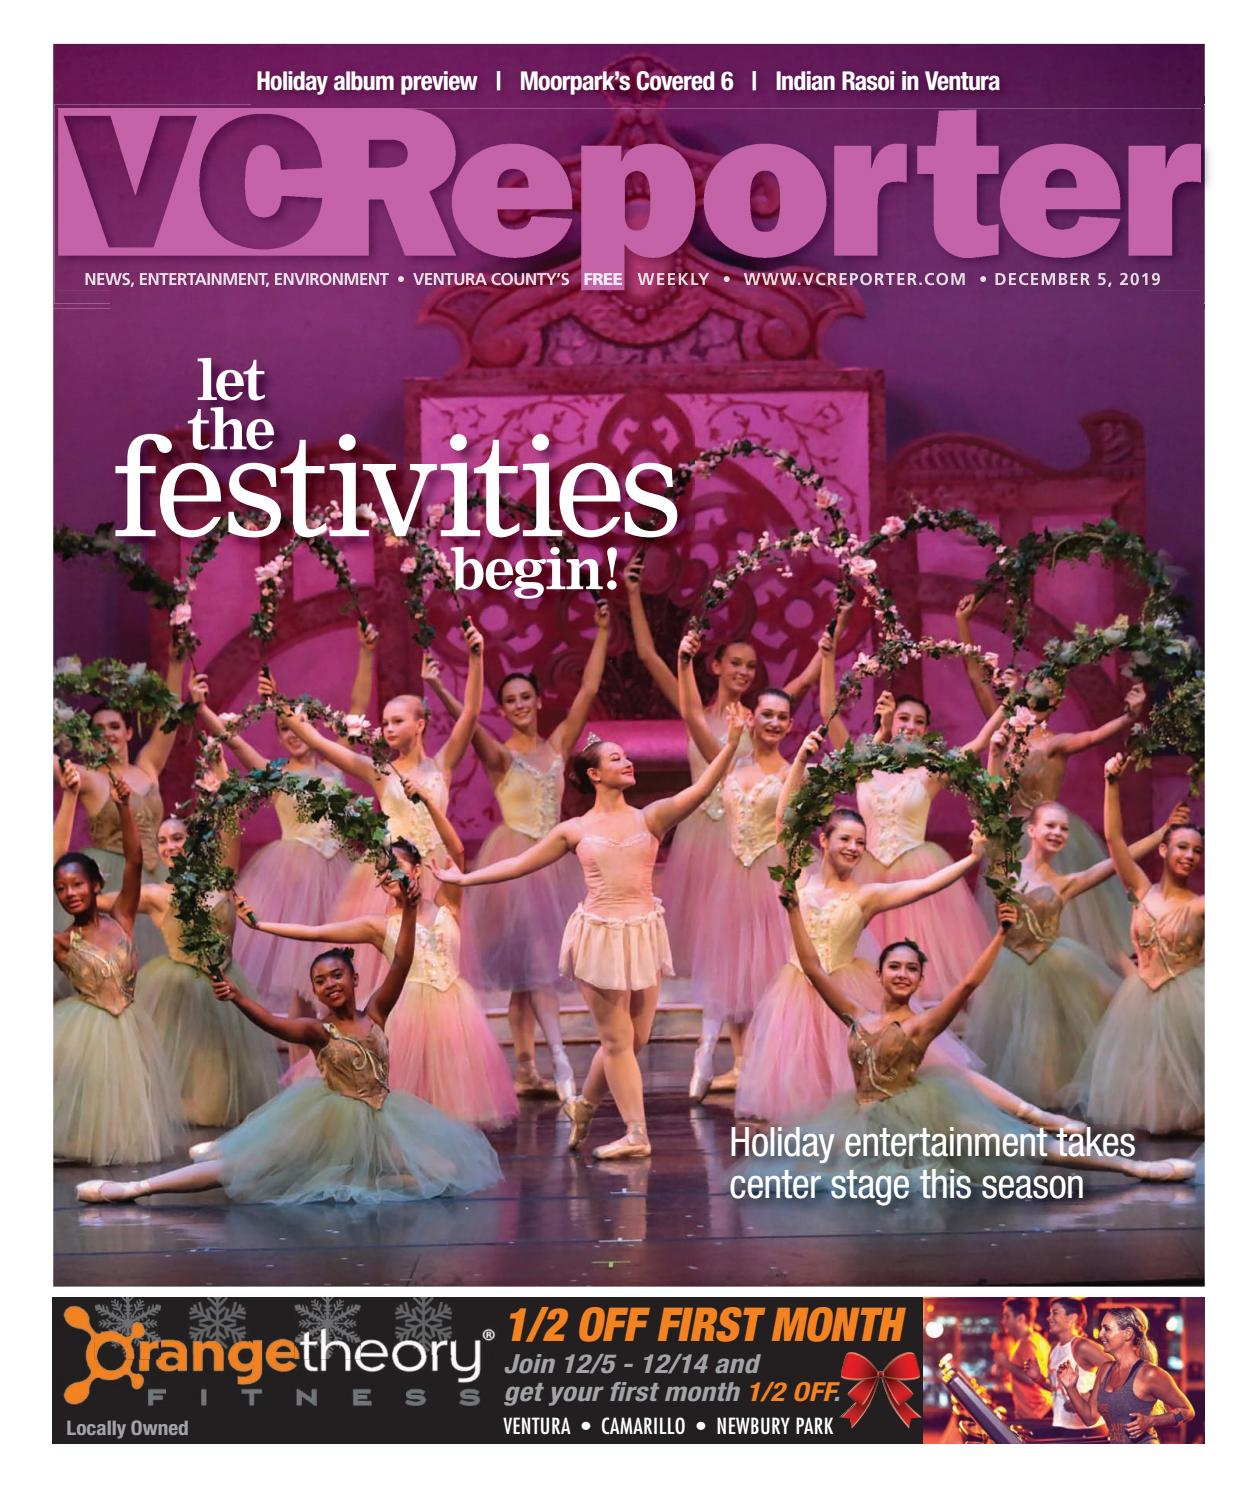 Vcreporter 12 05 2019 By Times Media Group Issuu